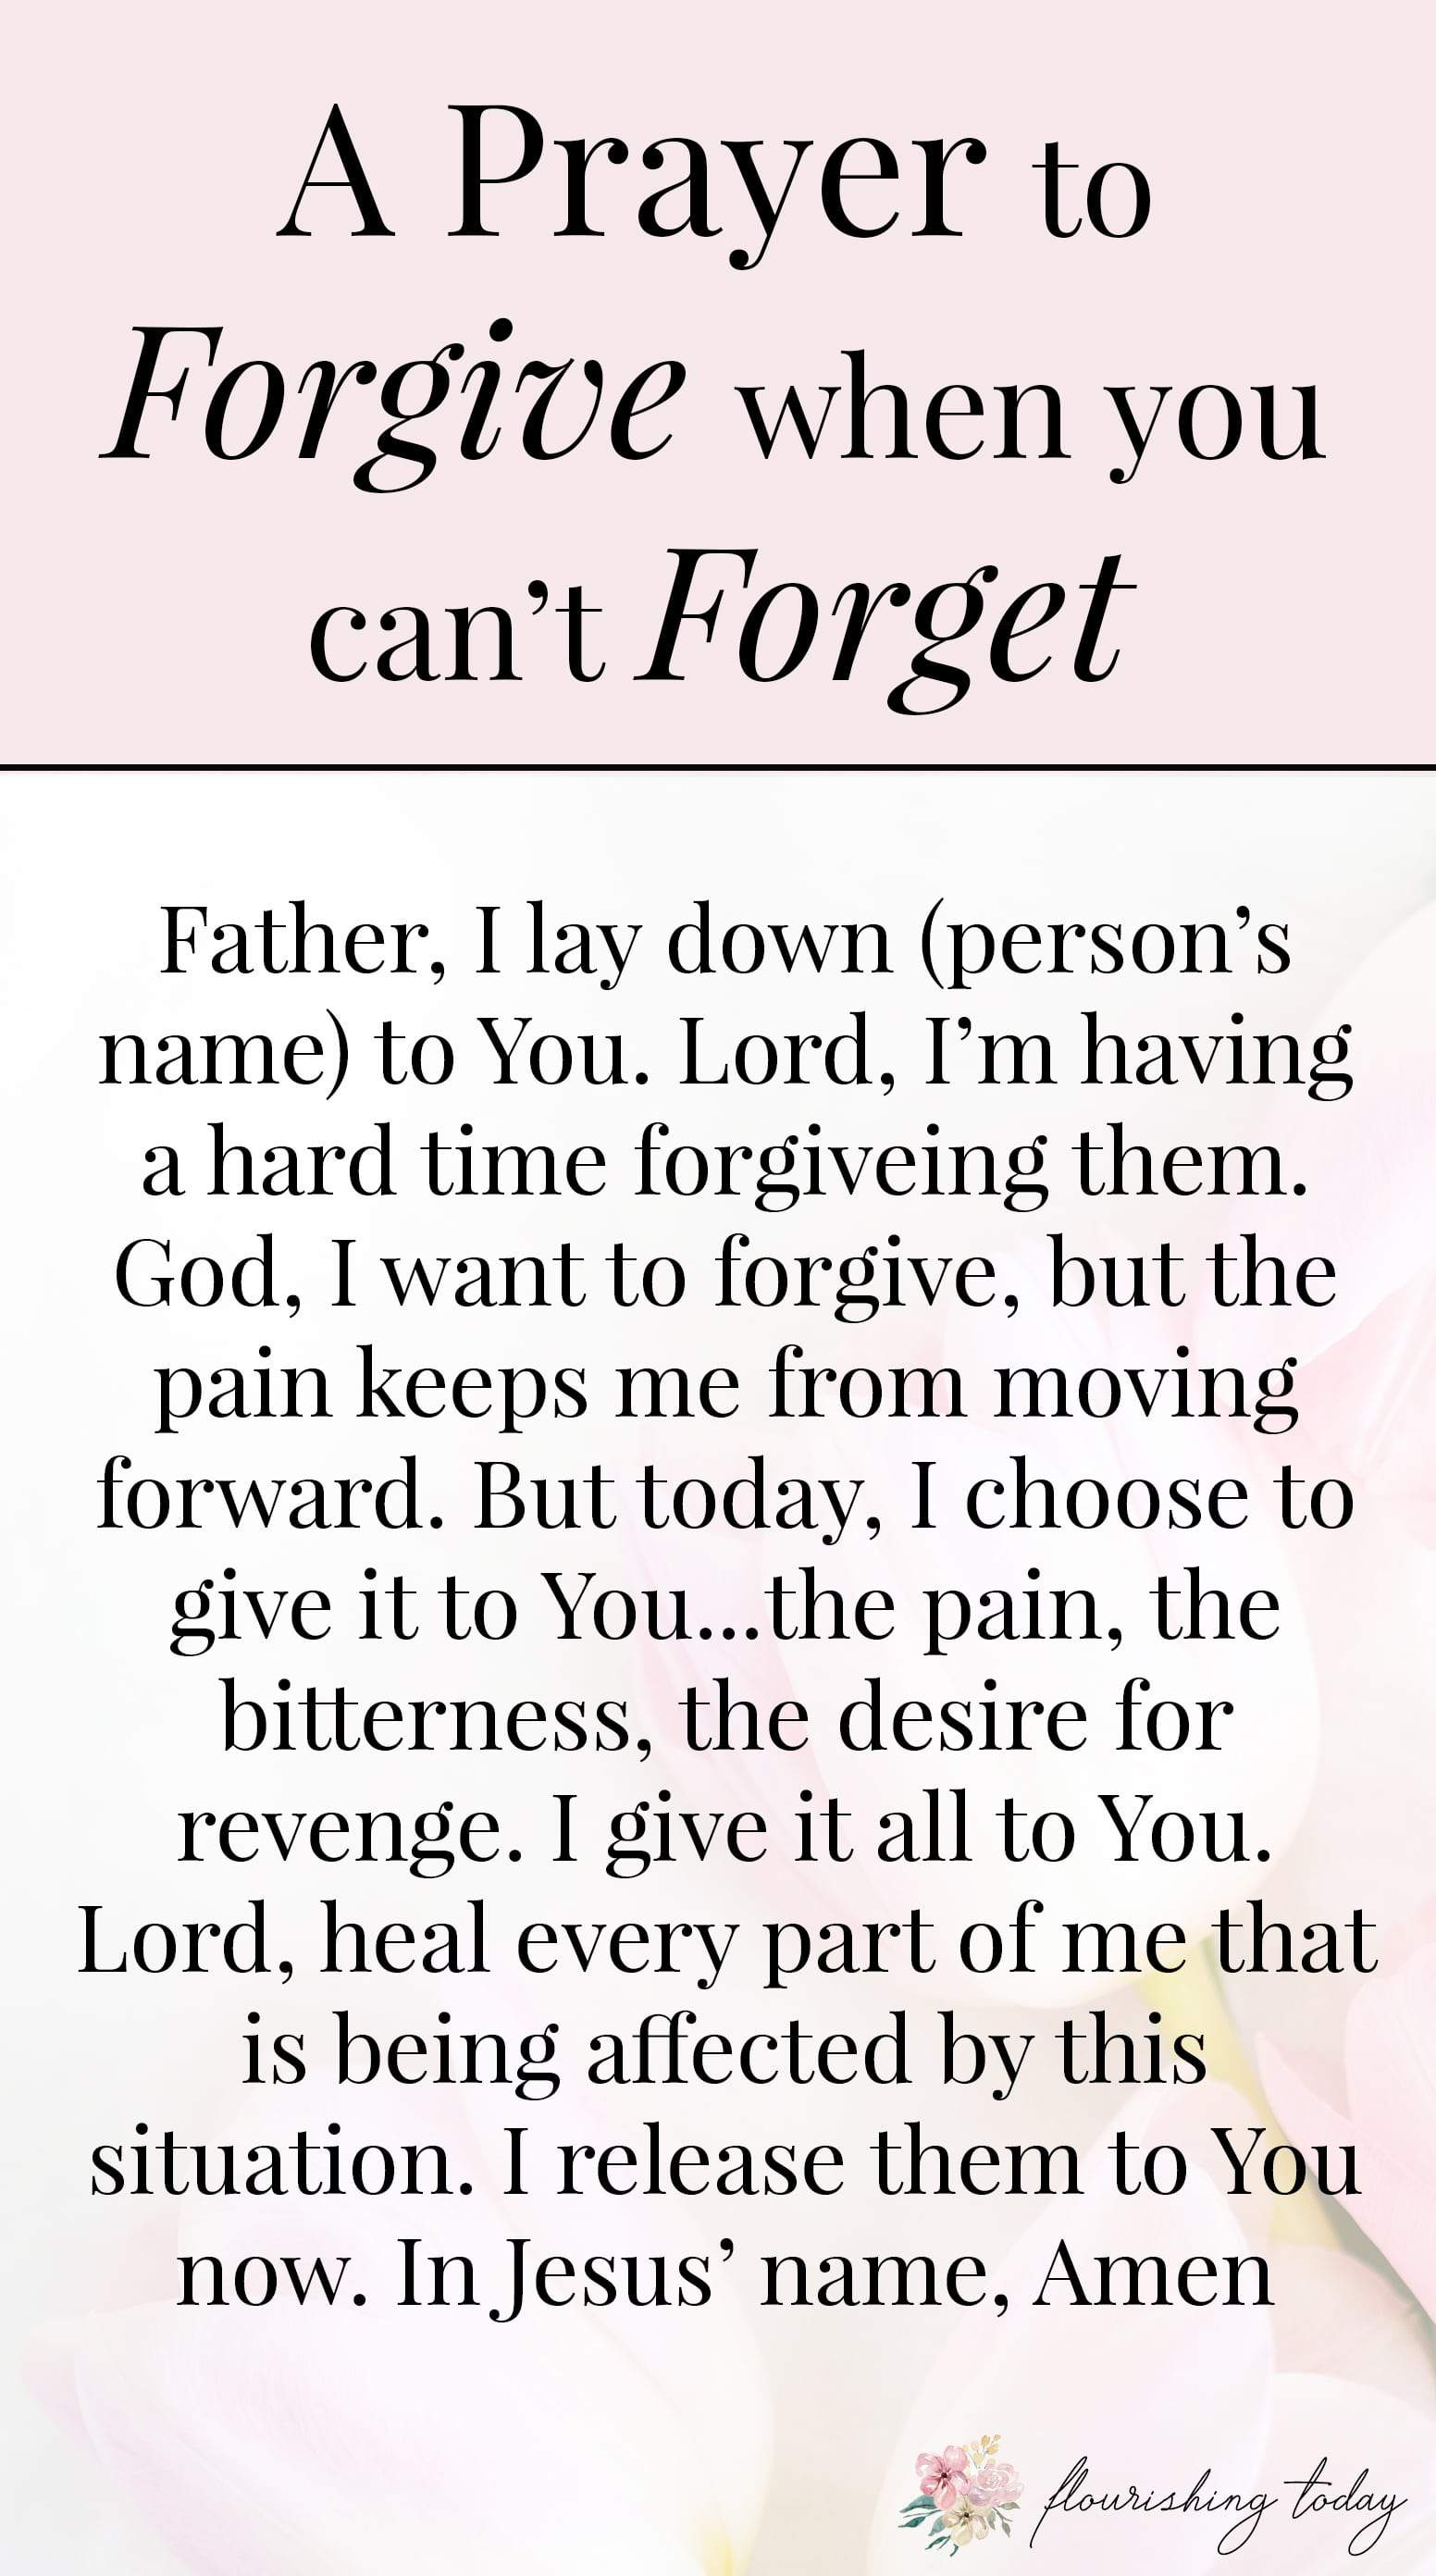 Can you forgive when you can't forget? Whether you need to forgive in marriage, a family member, a friendship or any other relationship, it can be difficult to forgive when you've experienced a deep hurt. Here you'll find scripture on what God says about forgiveness and how you can forgive even when you can't forget. #bibleverses #scriptures #forgiveness #prayer